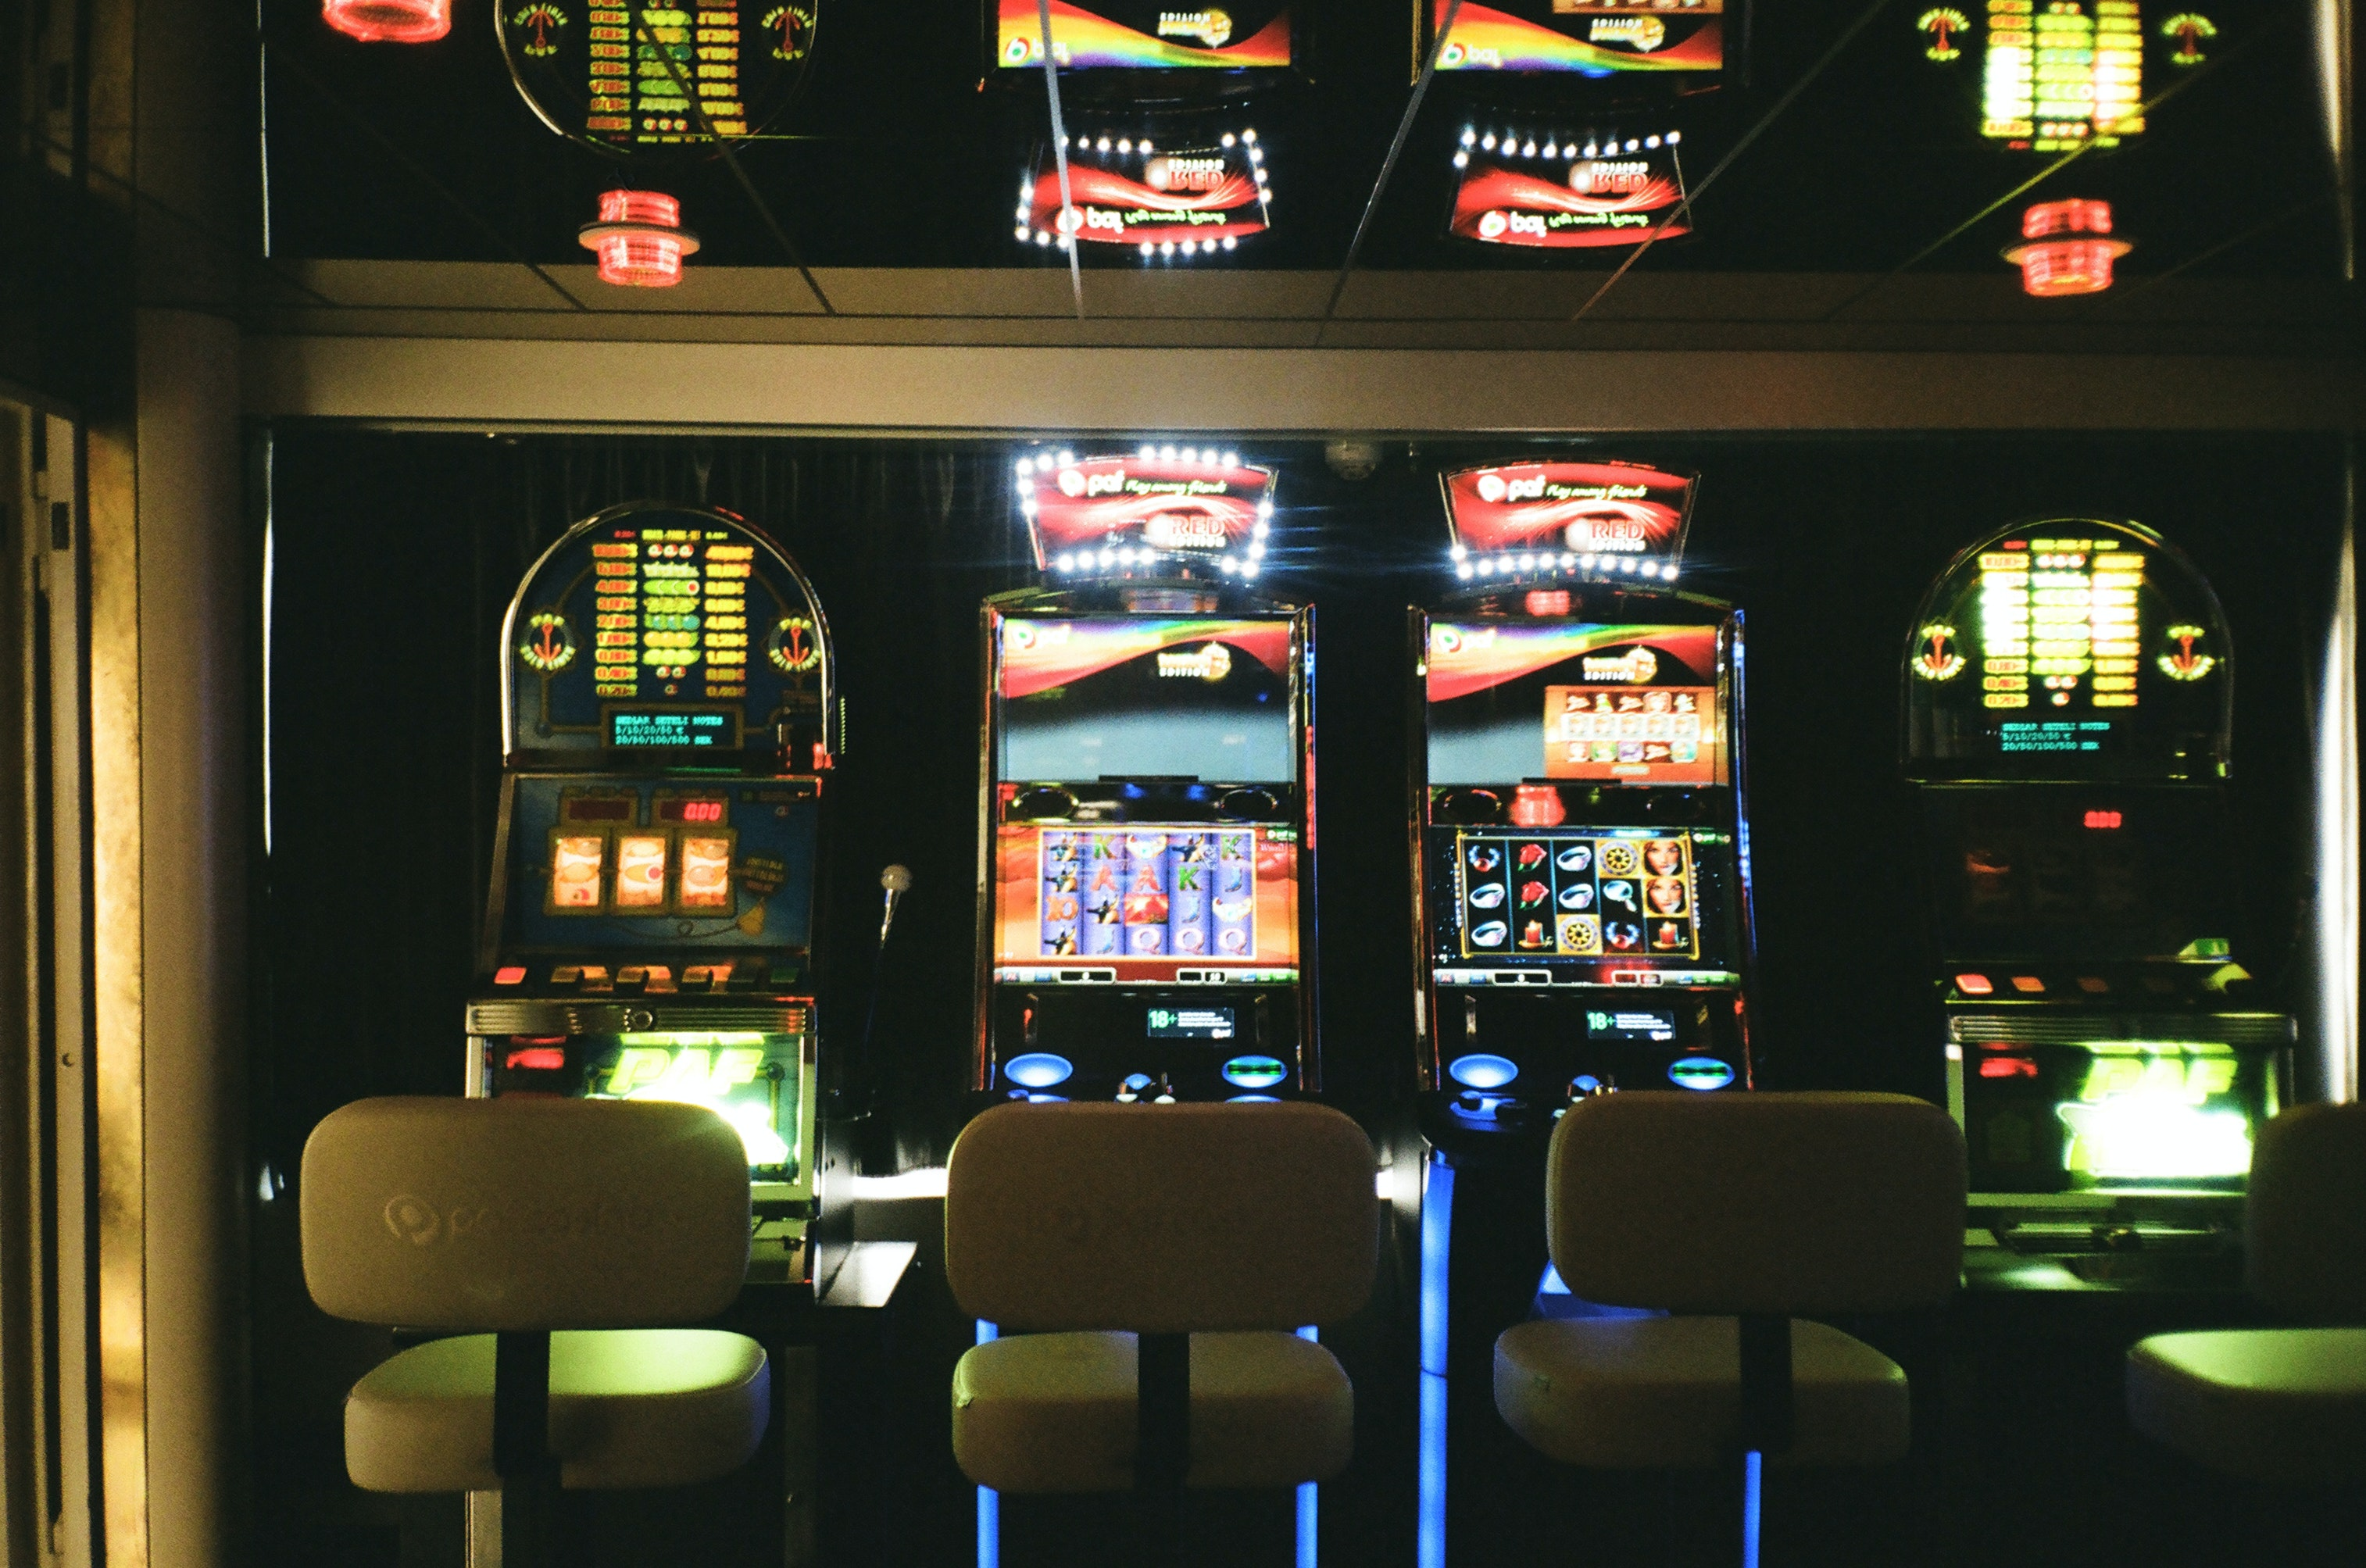 slot-machines-3021120.jpg